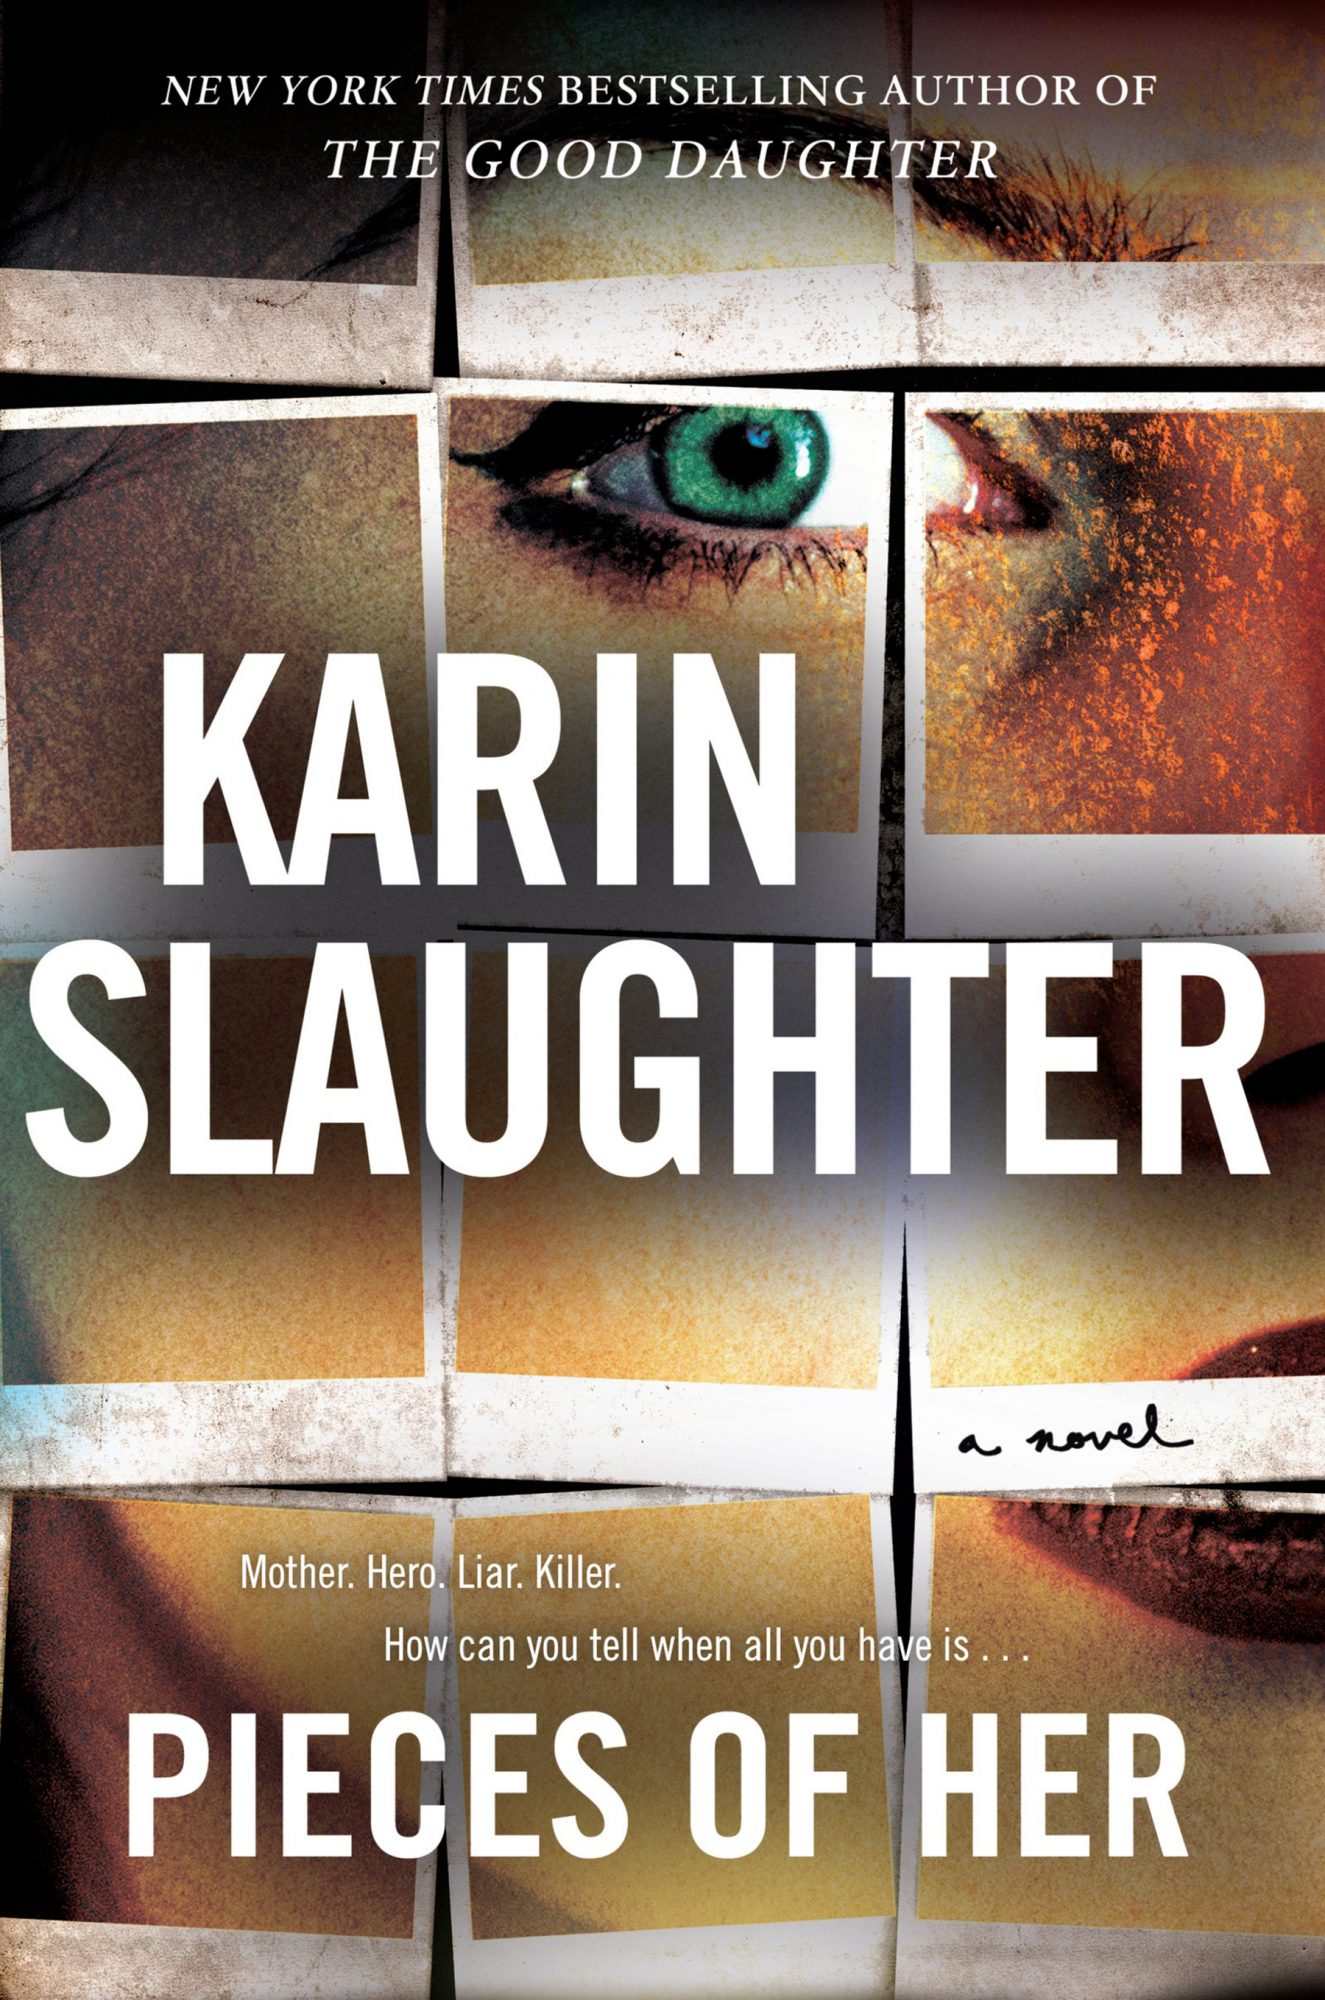 Pieces of Her: A Novel  by Karin Slaughter  William Morrow